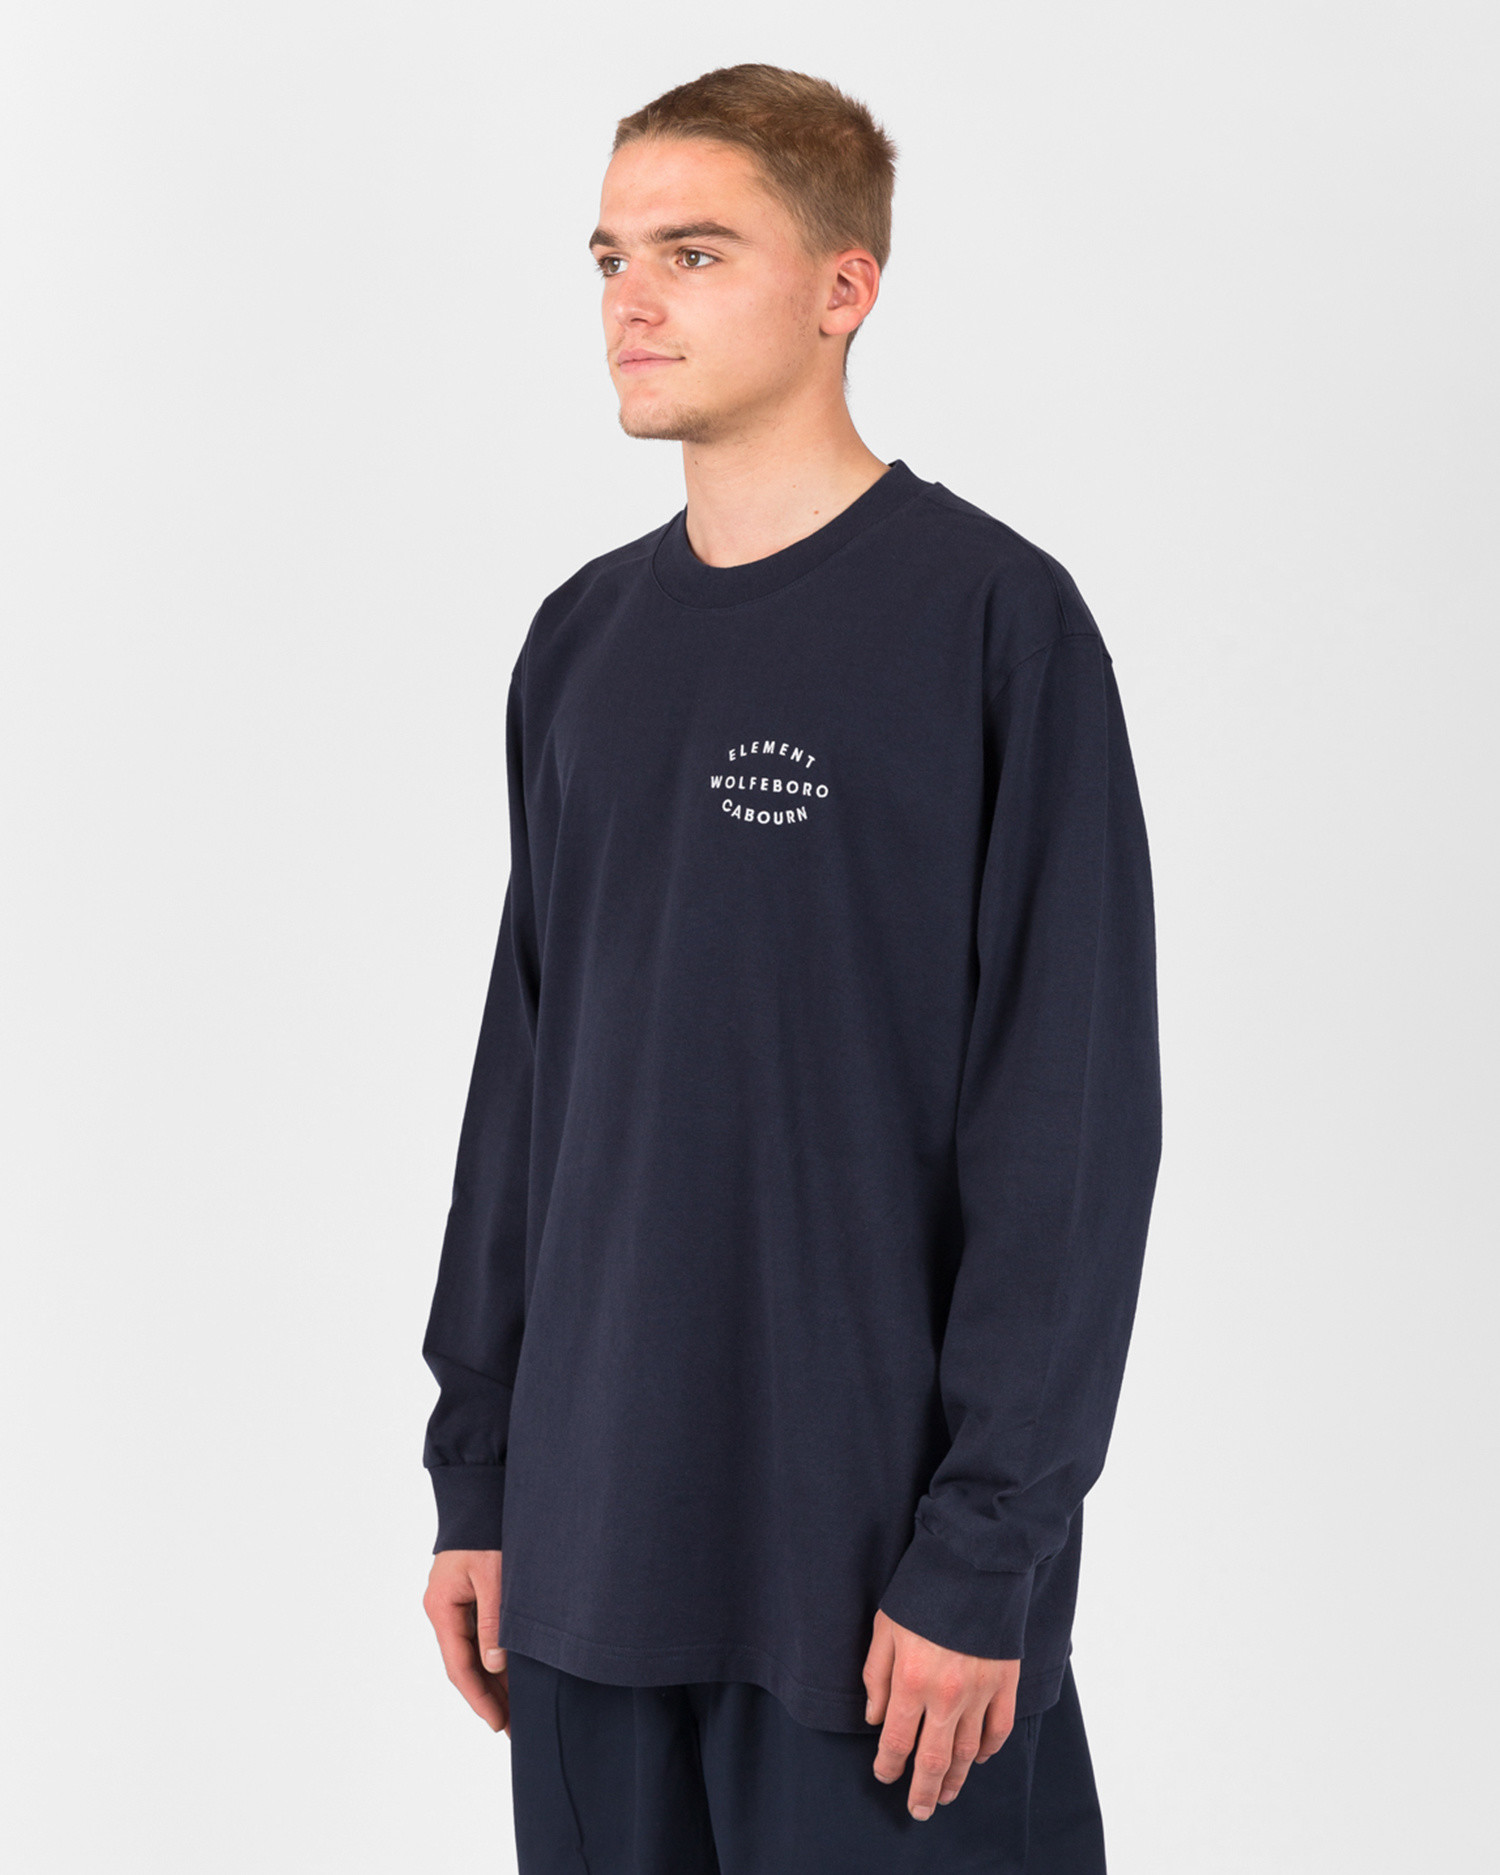 Element X Nigel Cabourn Classic Ls Eclipse Navy